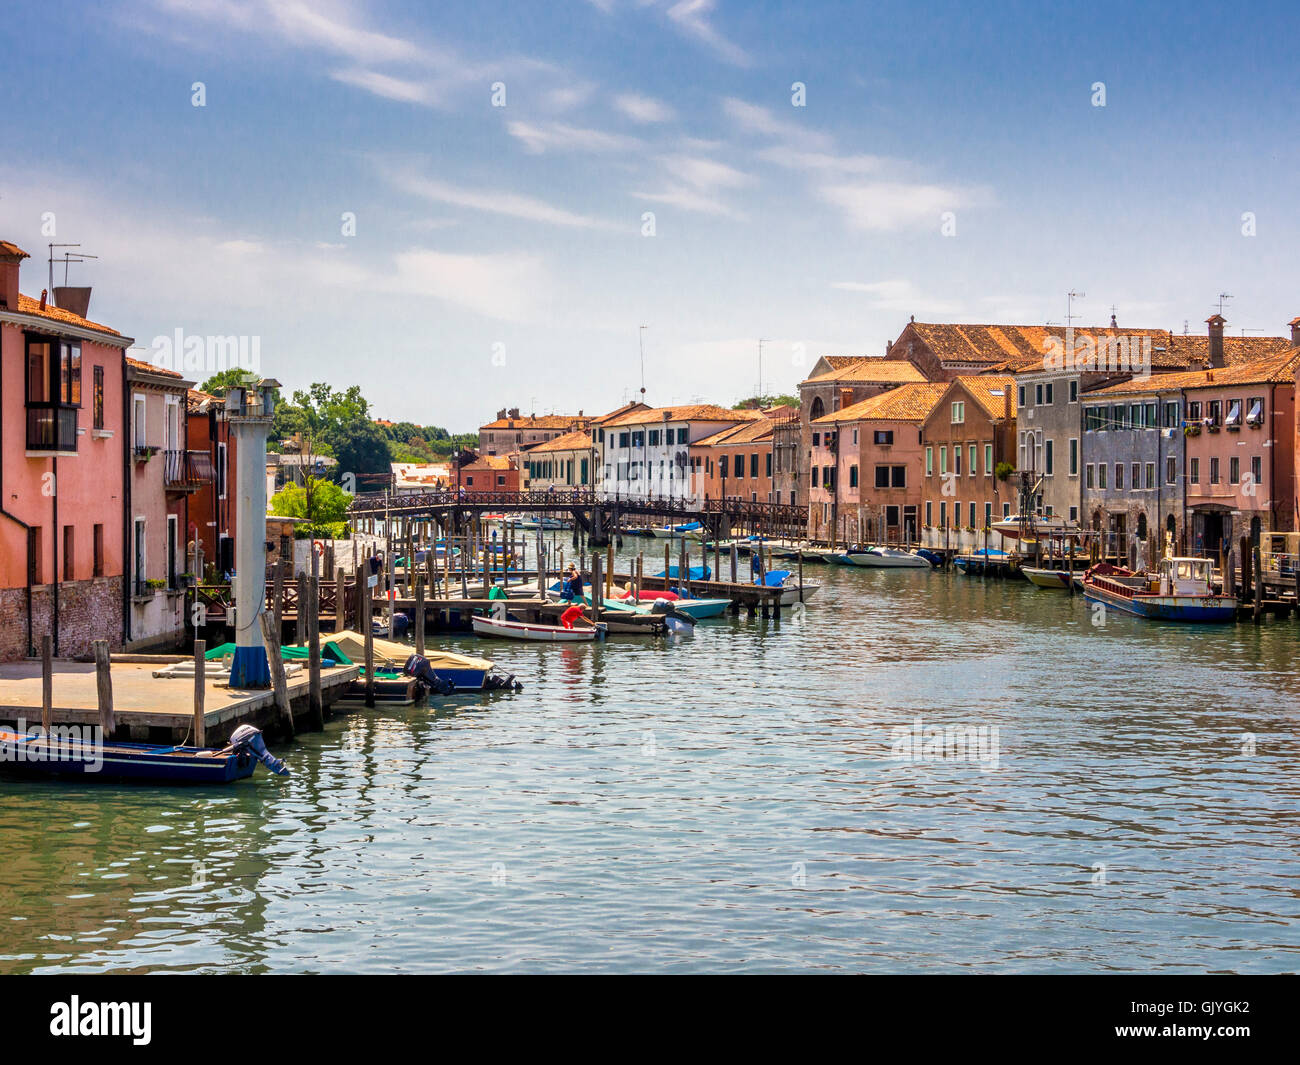 View of the Canale di San Pietro from Ponte di Quintavalle. Venice. Italy. Stock Photo